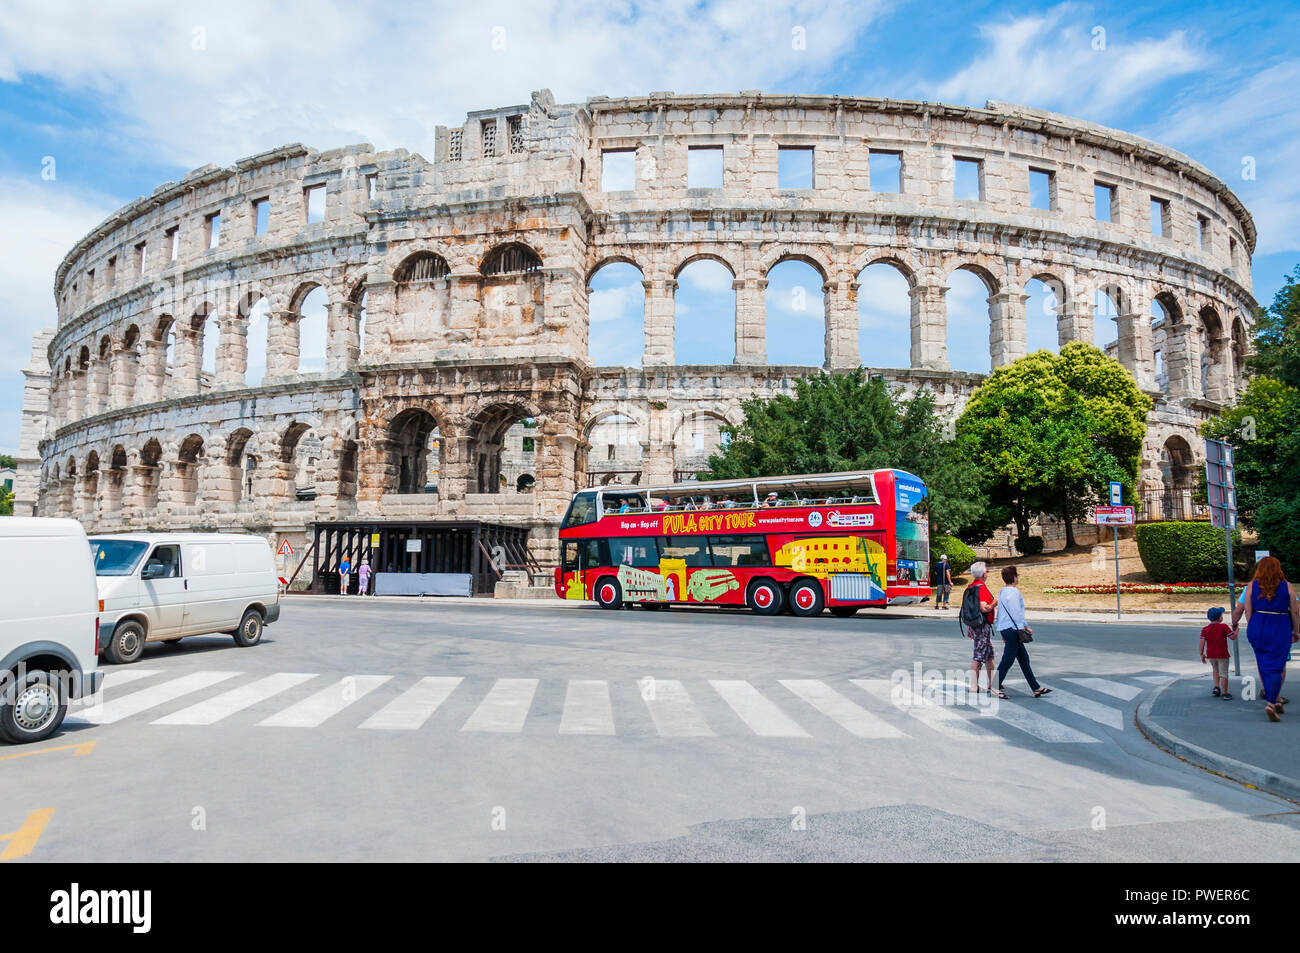 Pula, Croatia - June 18, 2014: Amphitheater or Pula Arena. Local city people and tourists passing the streets near the Arena. The most famous and impo - Stock Image